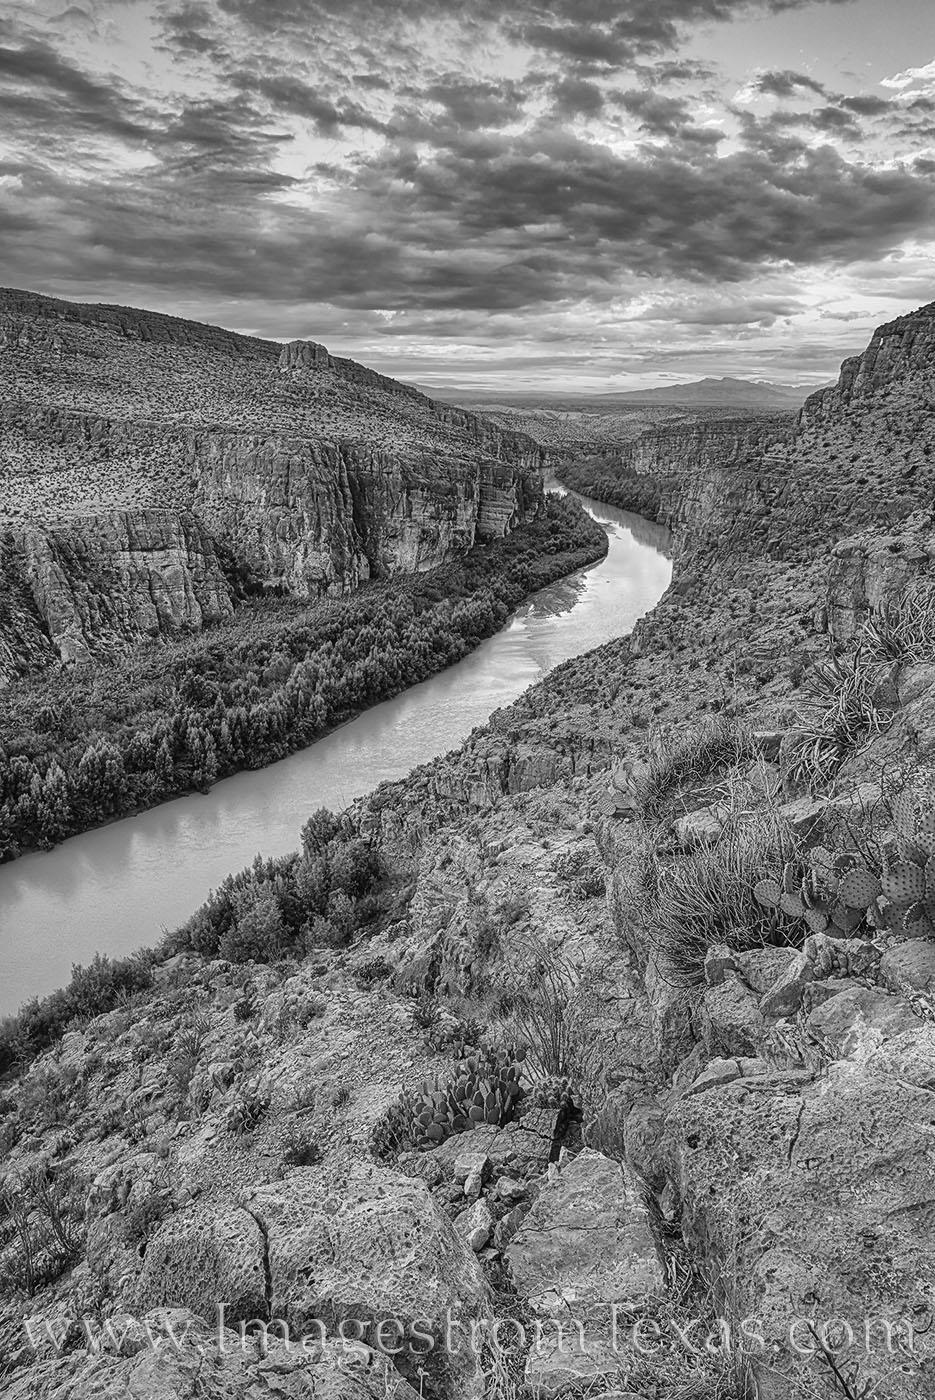 rio grande, hot springs trail, big bend, border, sunrise, morning, hiking texas, big bend hikes, cacti, black and white, photo